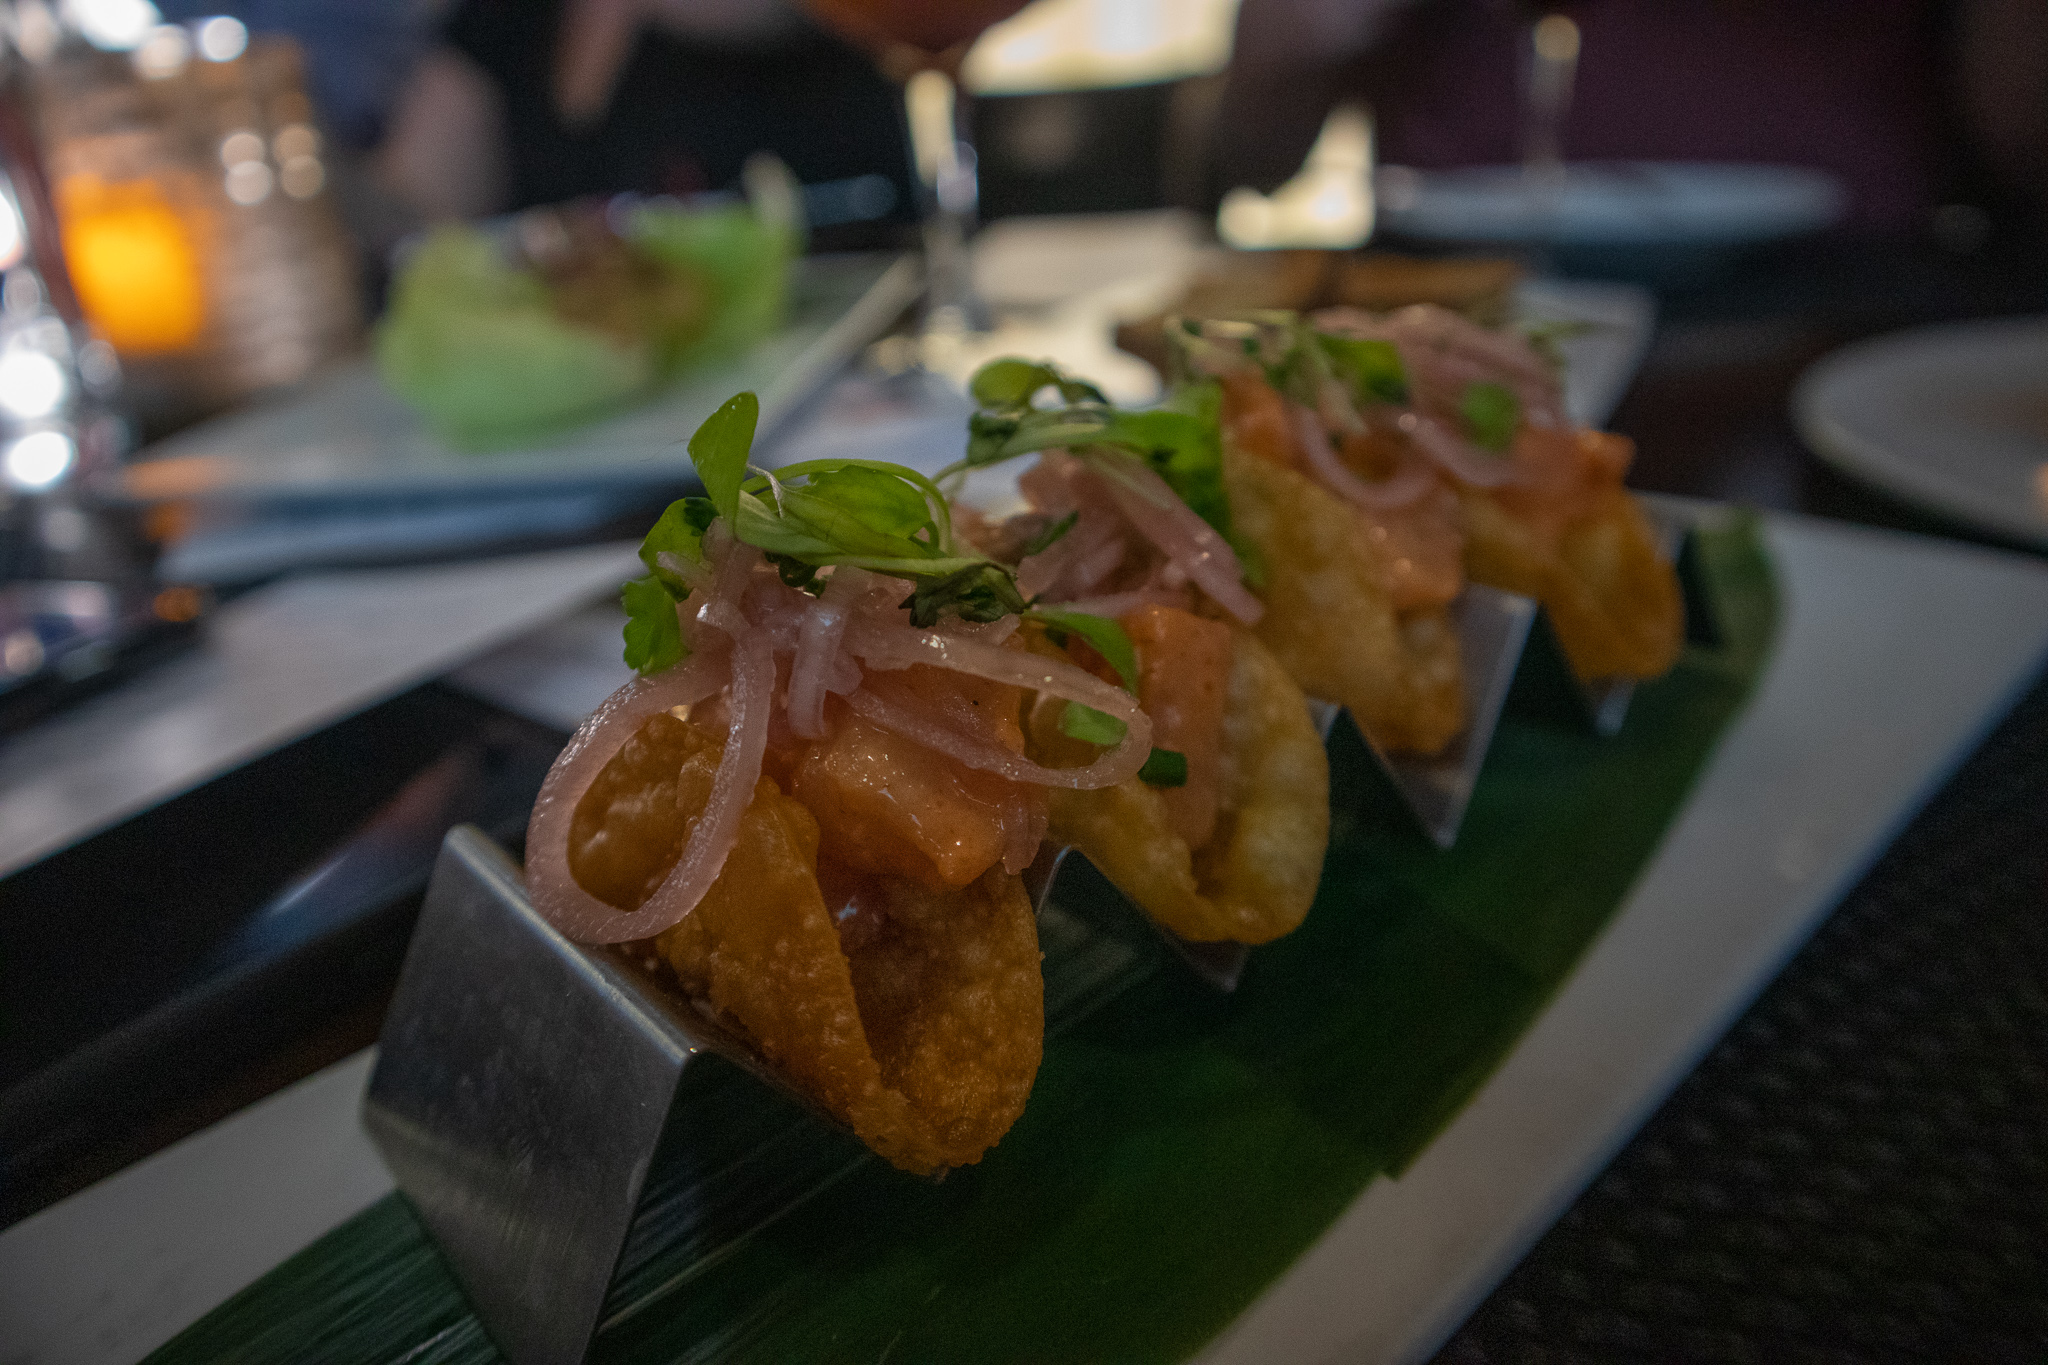 Spicy Yellowtail Wonton Tacos - Yellowtail, Chili Oil, Pickled Shallots, Green Onions, Cilantro